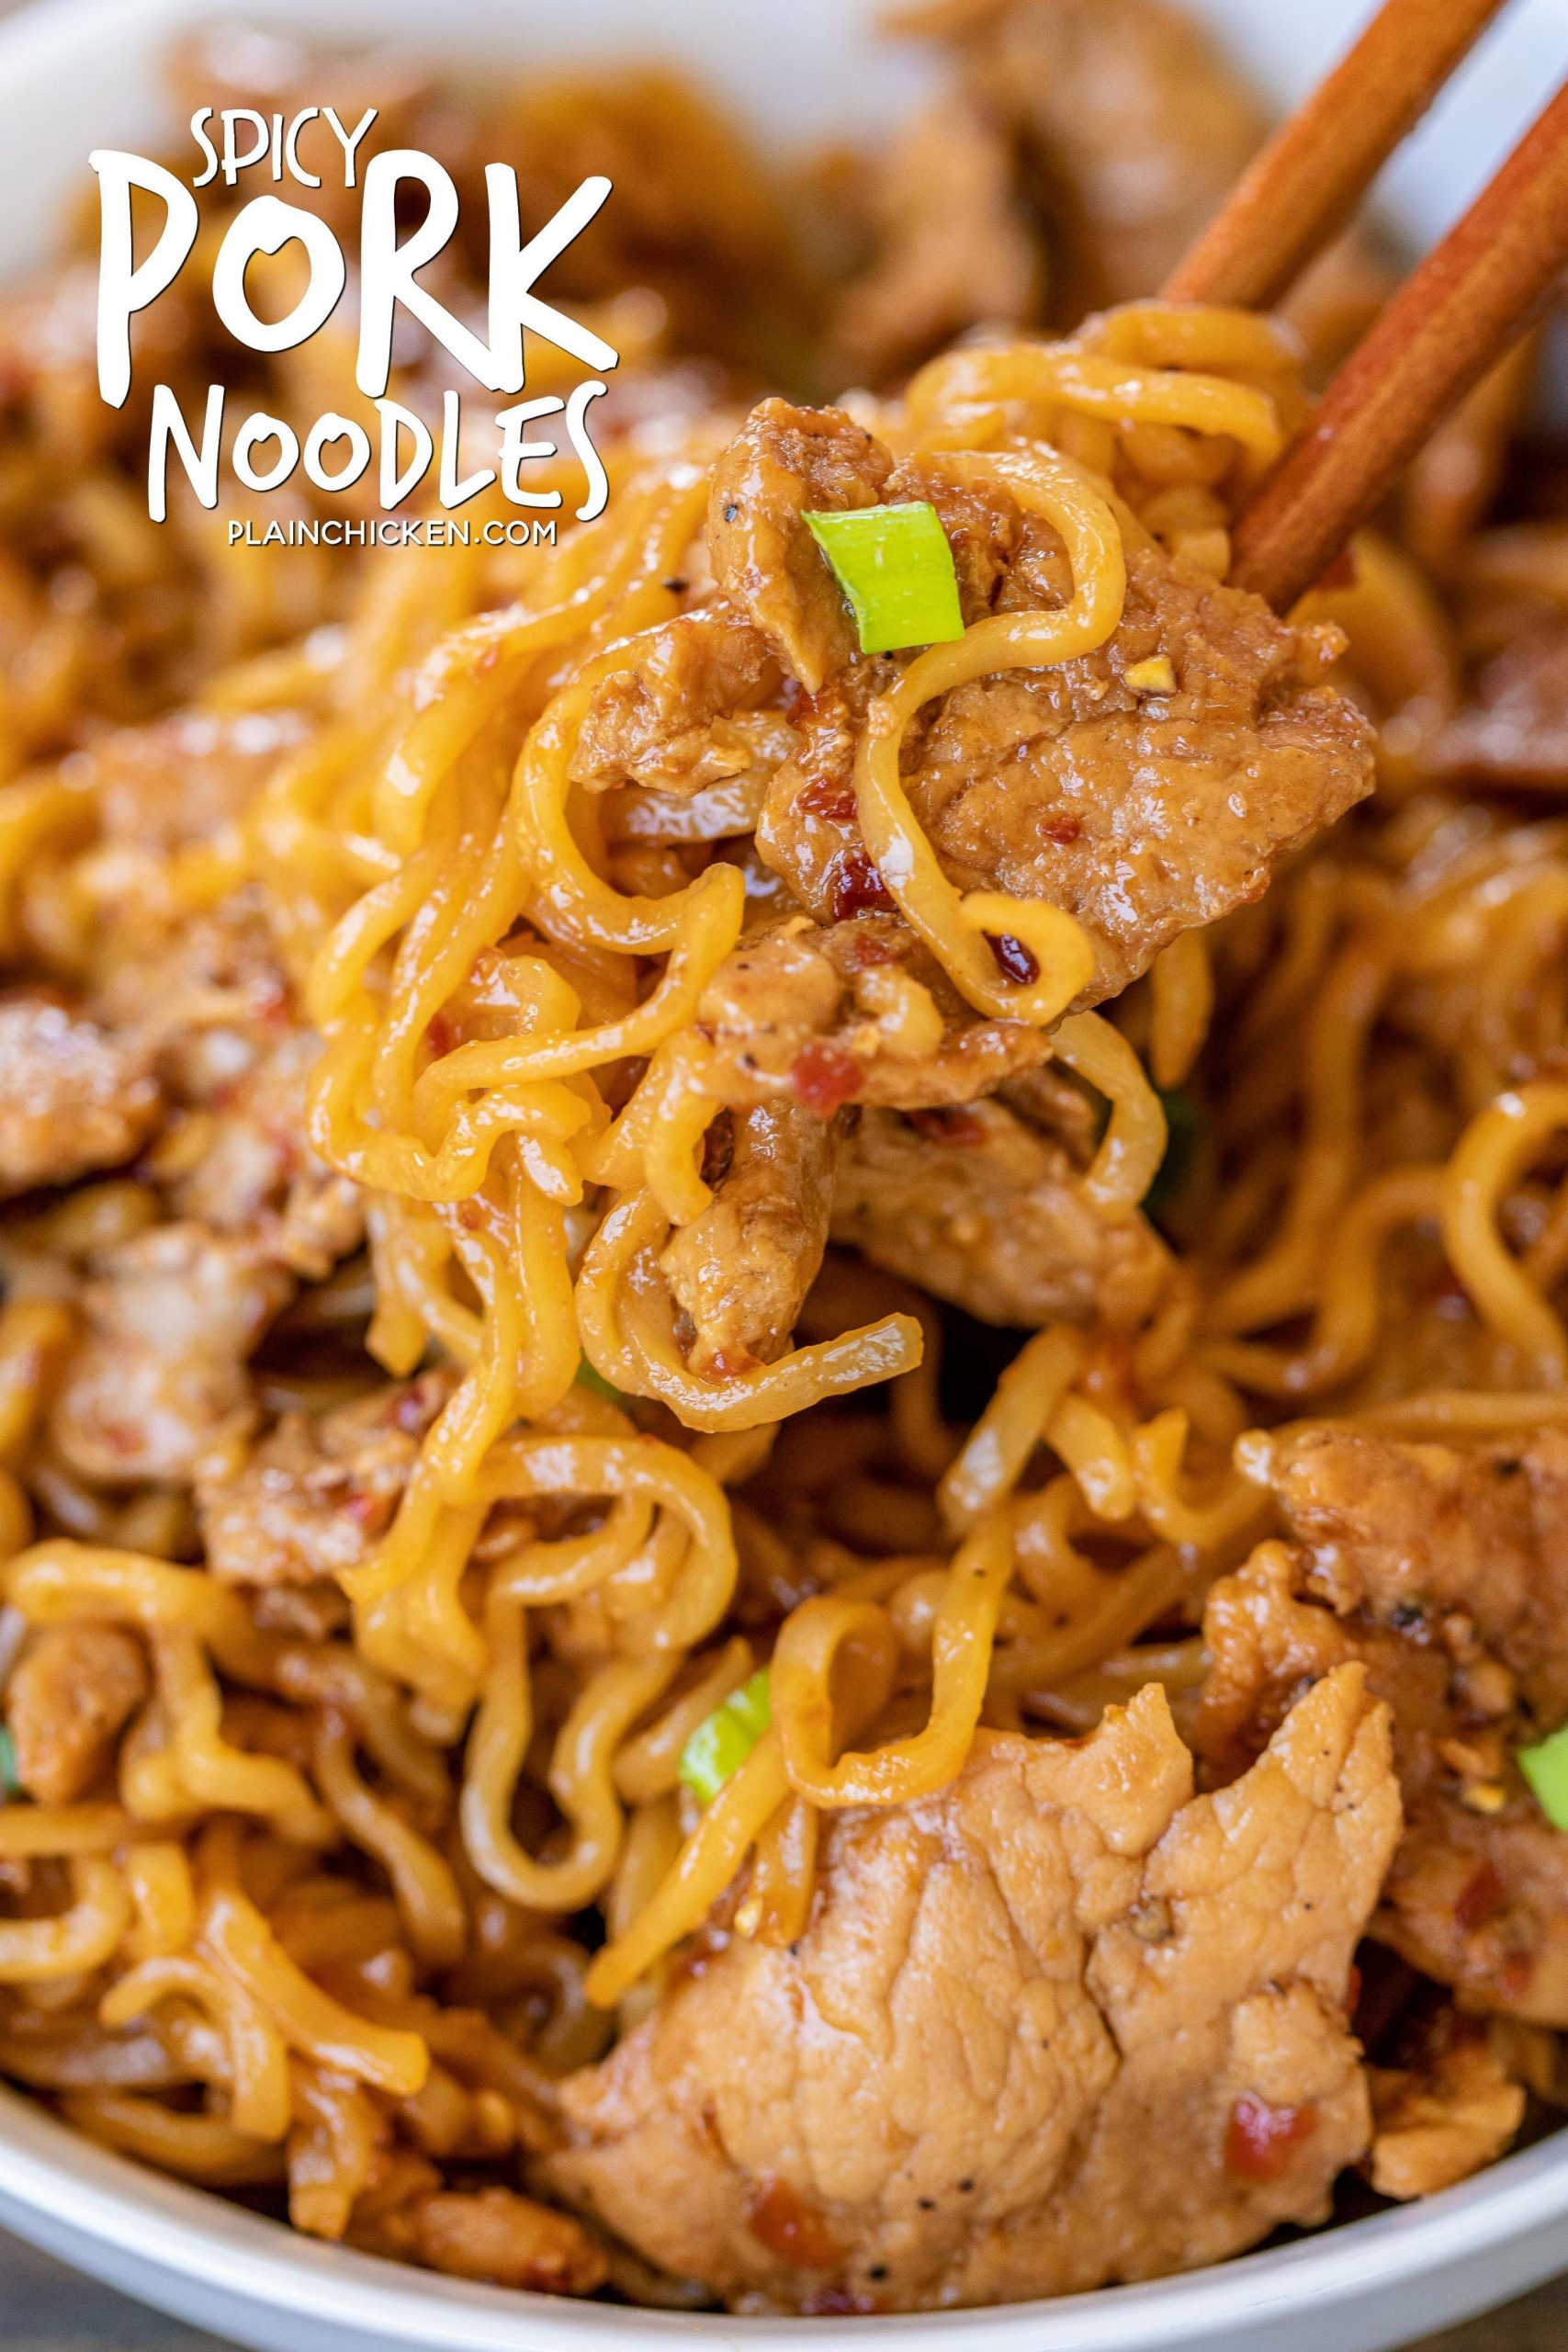 Spicy Pork Noodles - ready to eat in 11 minutes!!! Only 11 ..